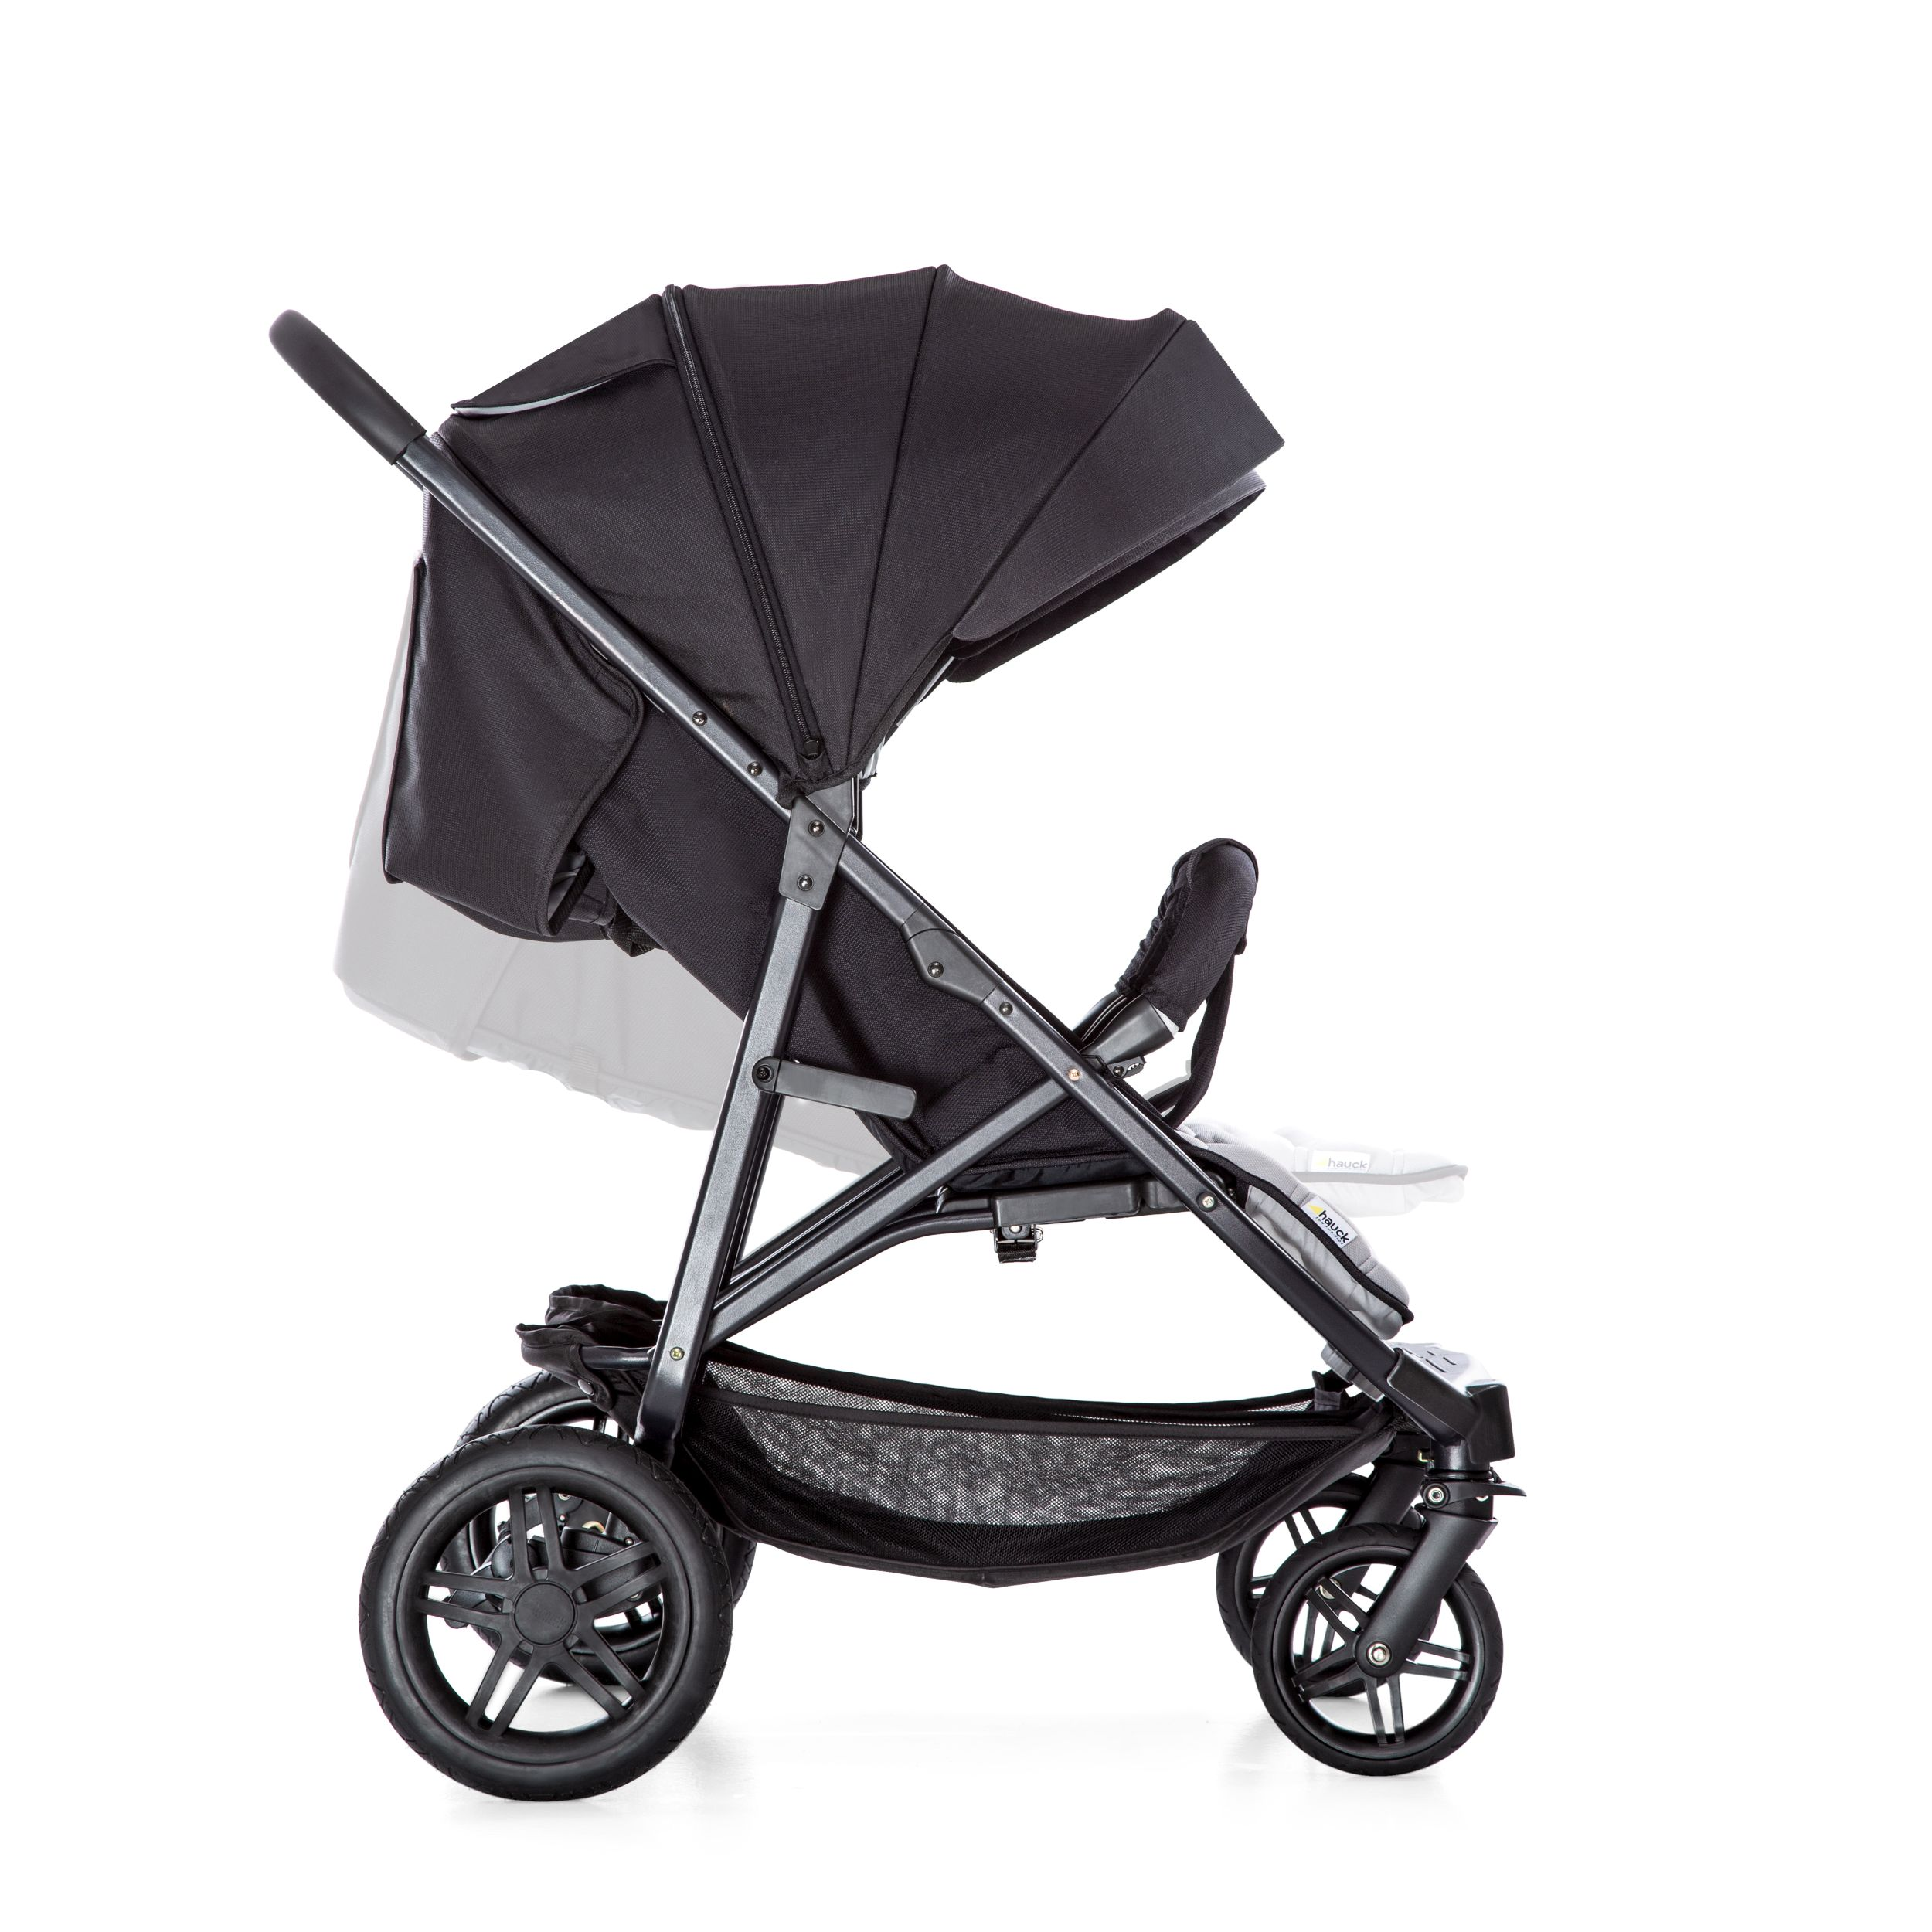 Tweeling Kinderwagen Abc Zoom Hauck Rapid 3r Duo